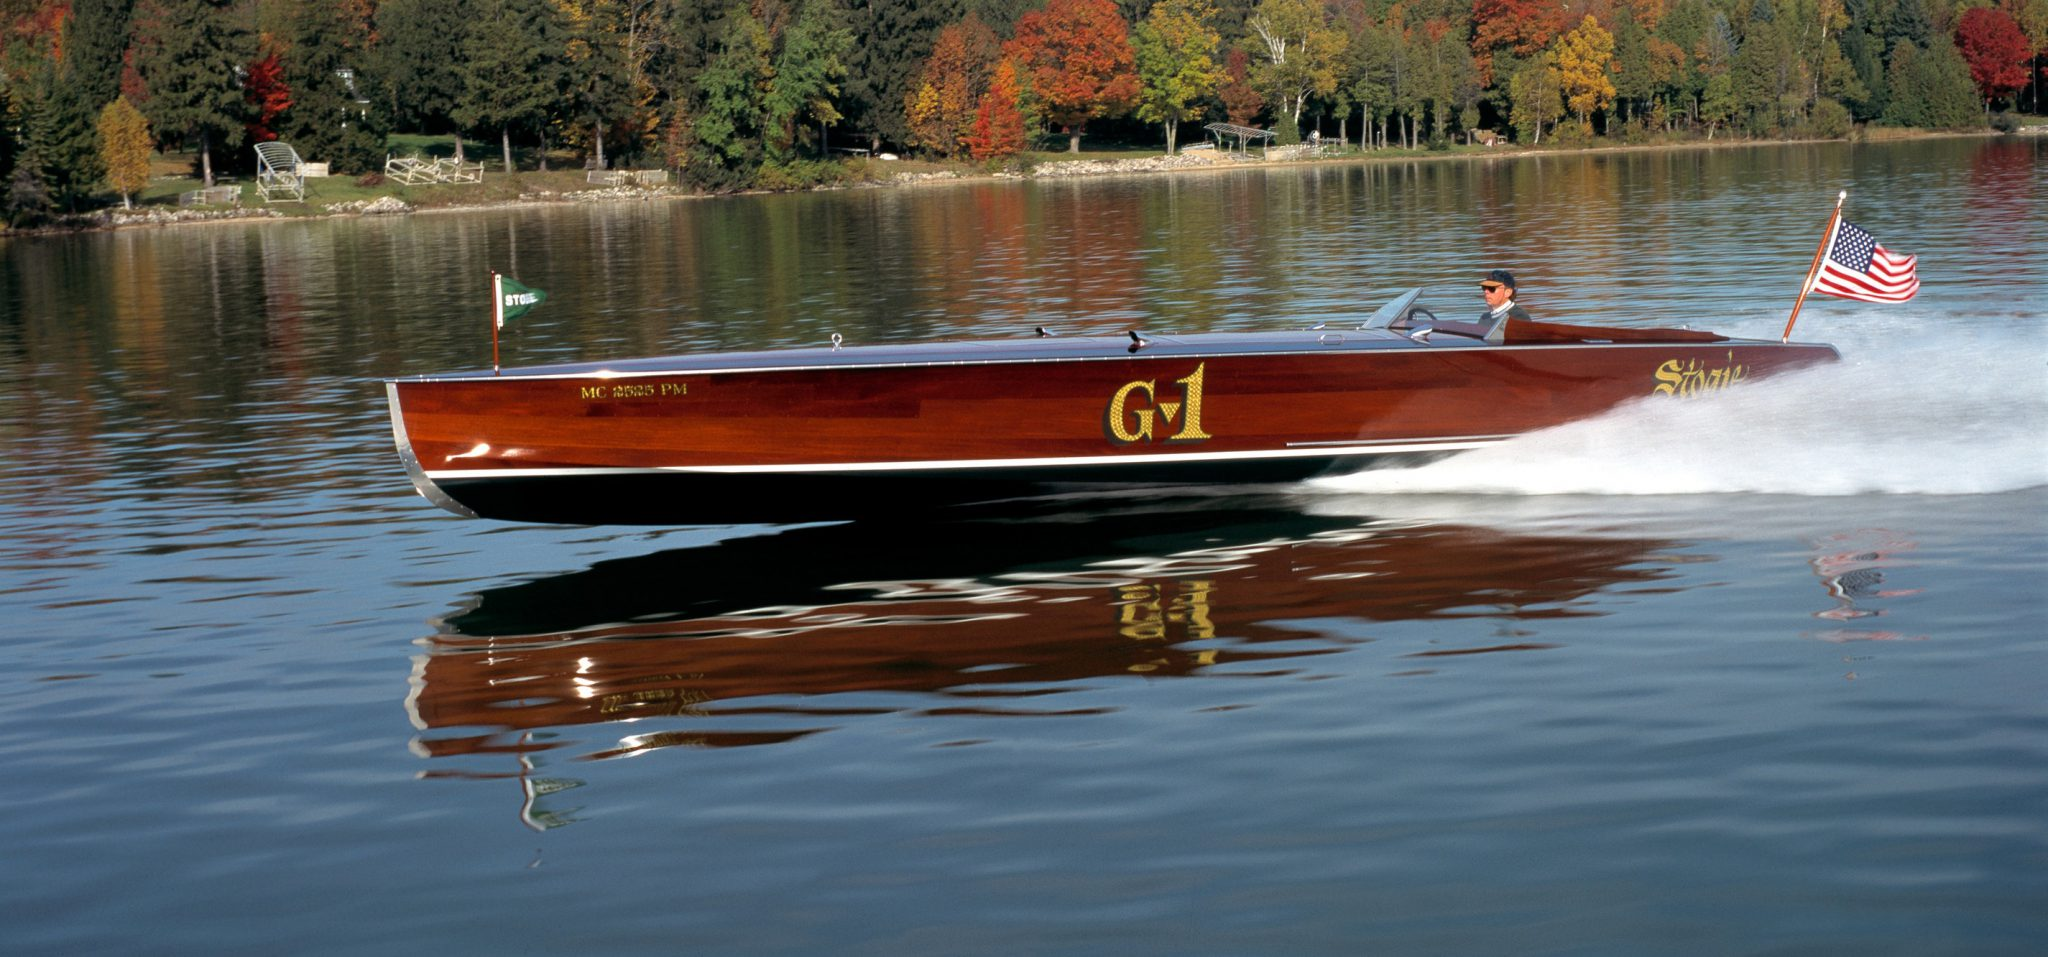 A side shot of the Stogie boat speeding through the water.